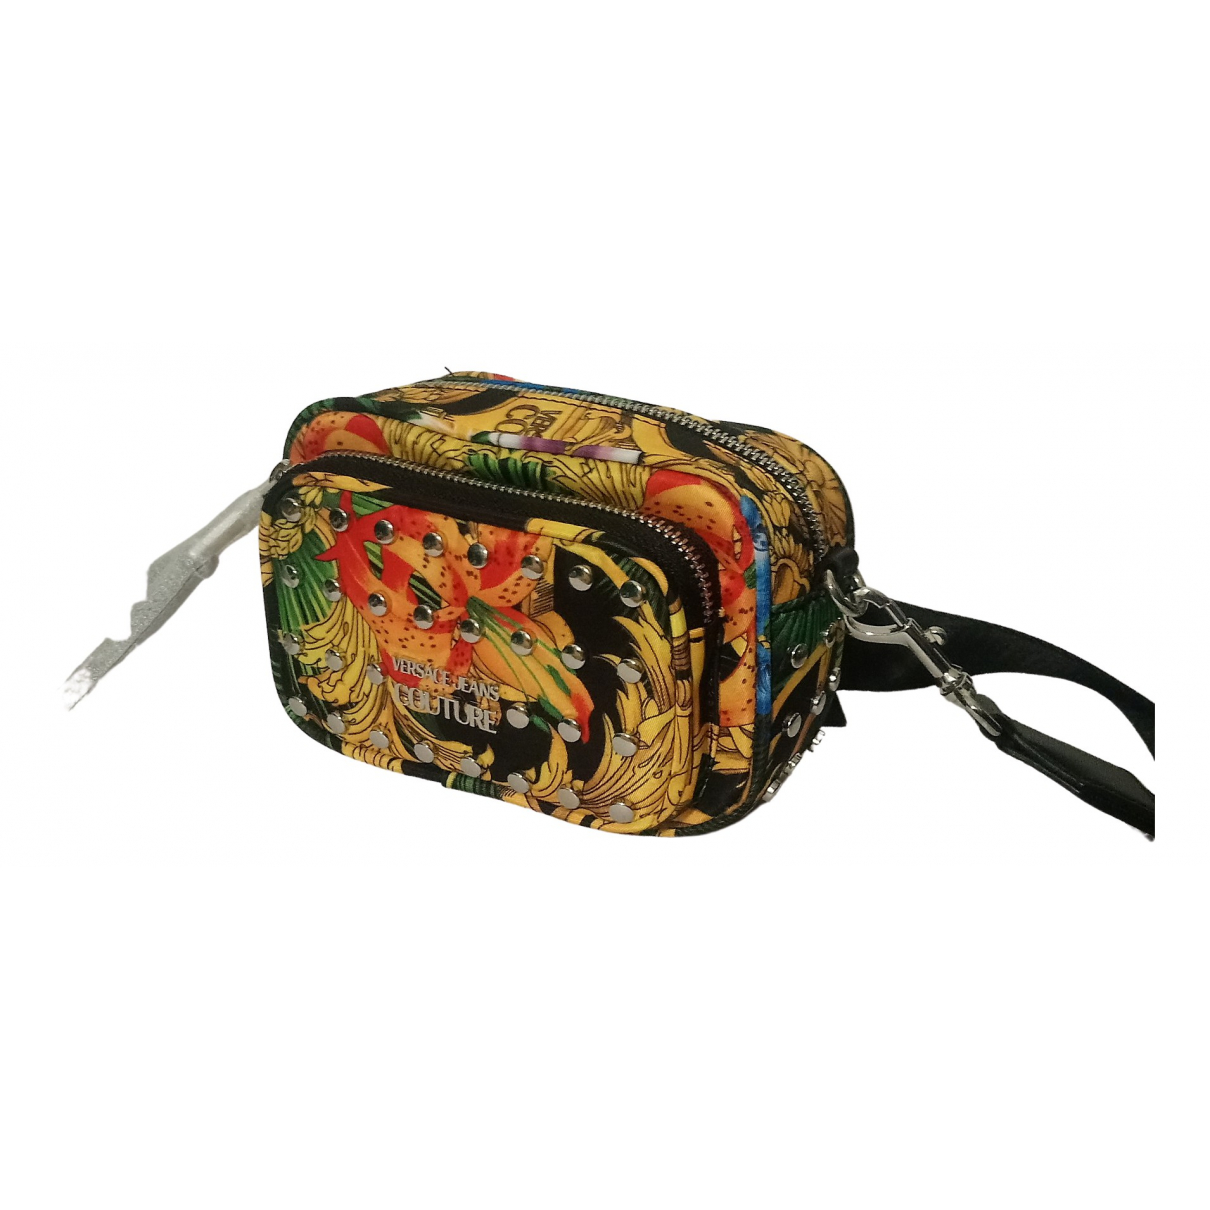 Versace Jeans \N Multicolour Cloth Clutch bag for Women \N